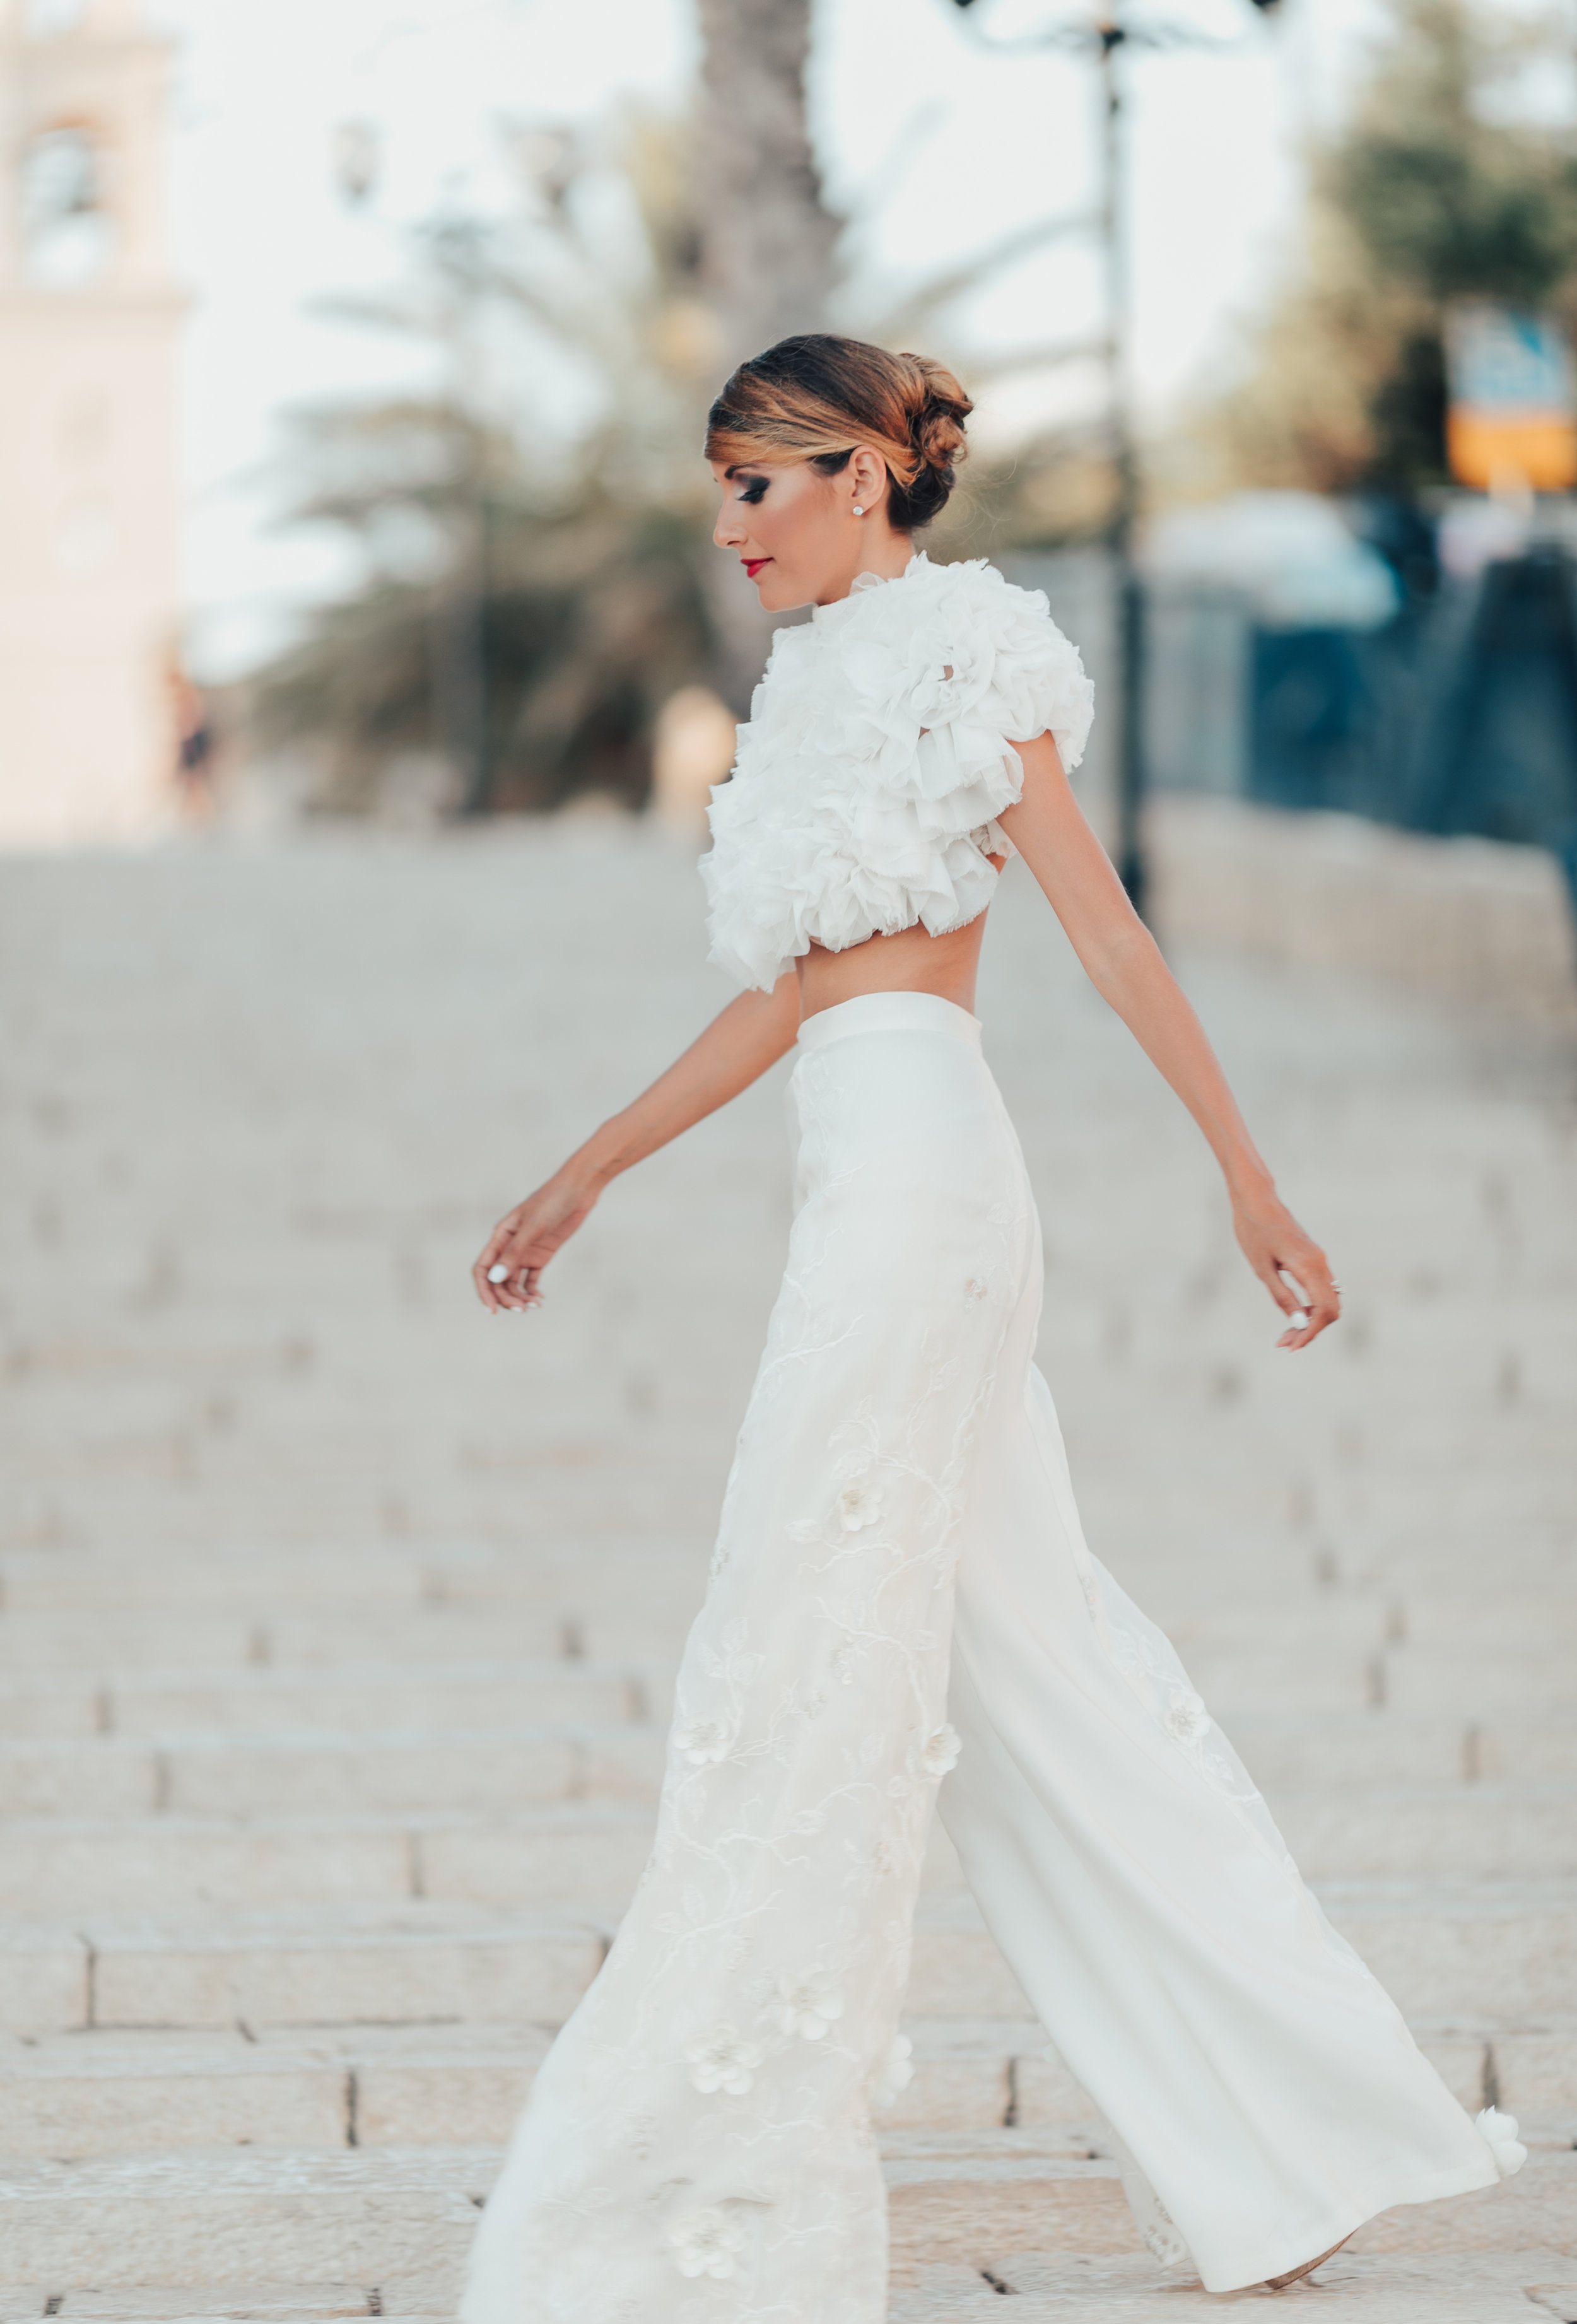 nk bride in Tel aviv - view photos